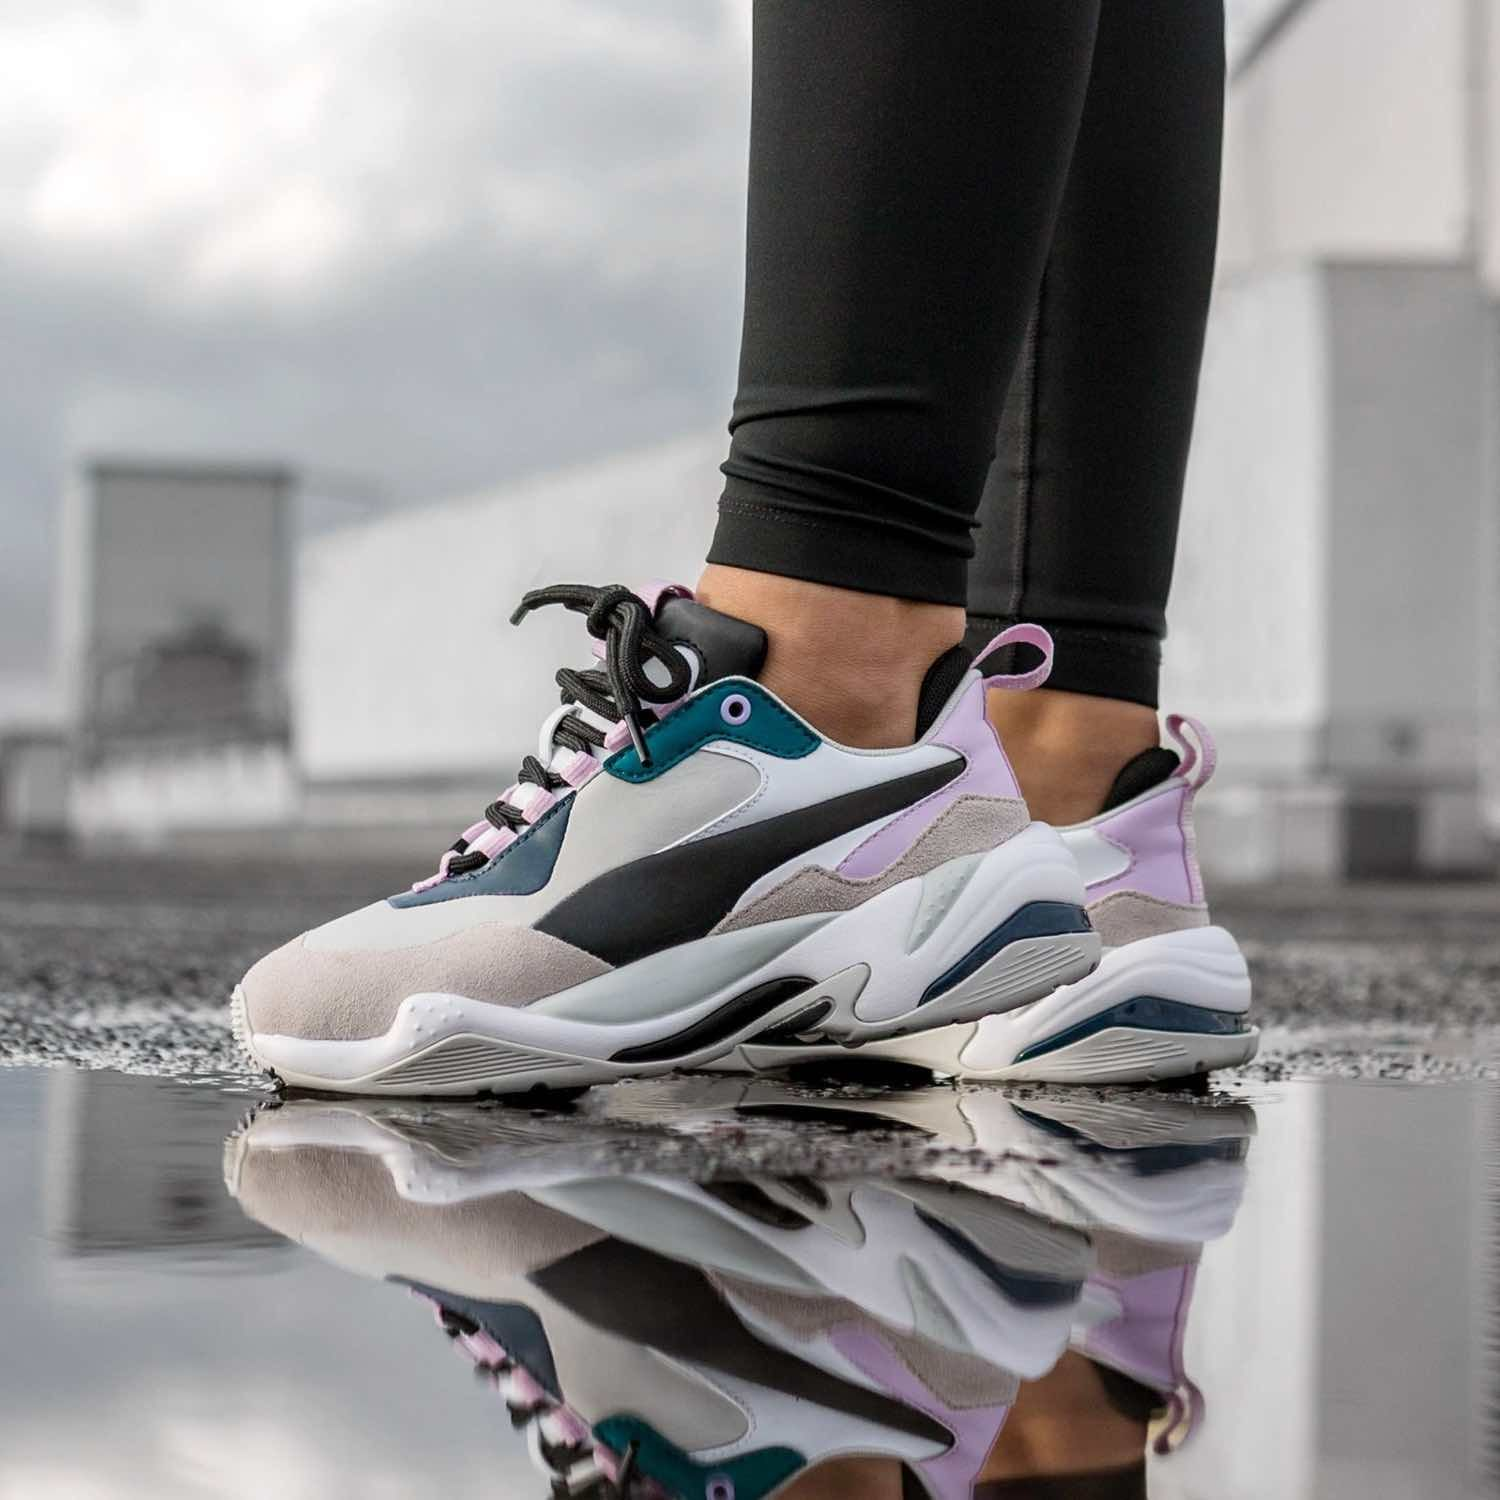 ingresos Chirrido Oh querido  insidesneakers • Puma Thunder Rive Droite Grey / Pink • 369452-01 |  Sneakers, Womens sneakers, Shoes